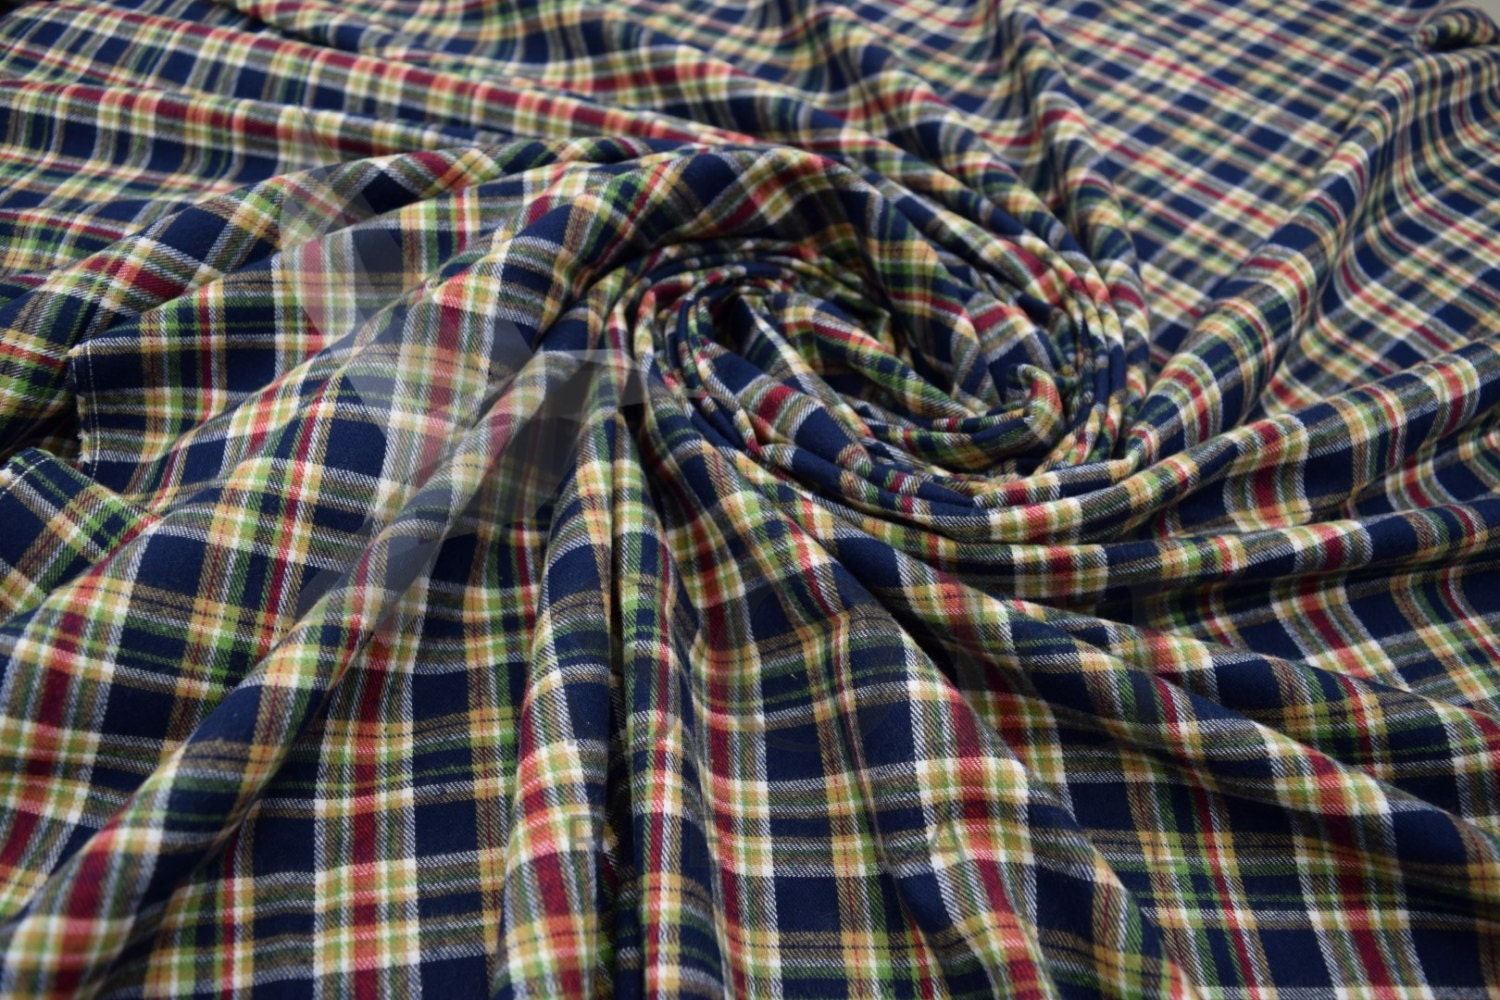 Cotton flannel plaid a tartan fabric by the yard for Cotton fabric by the yard